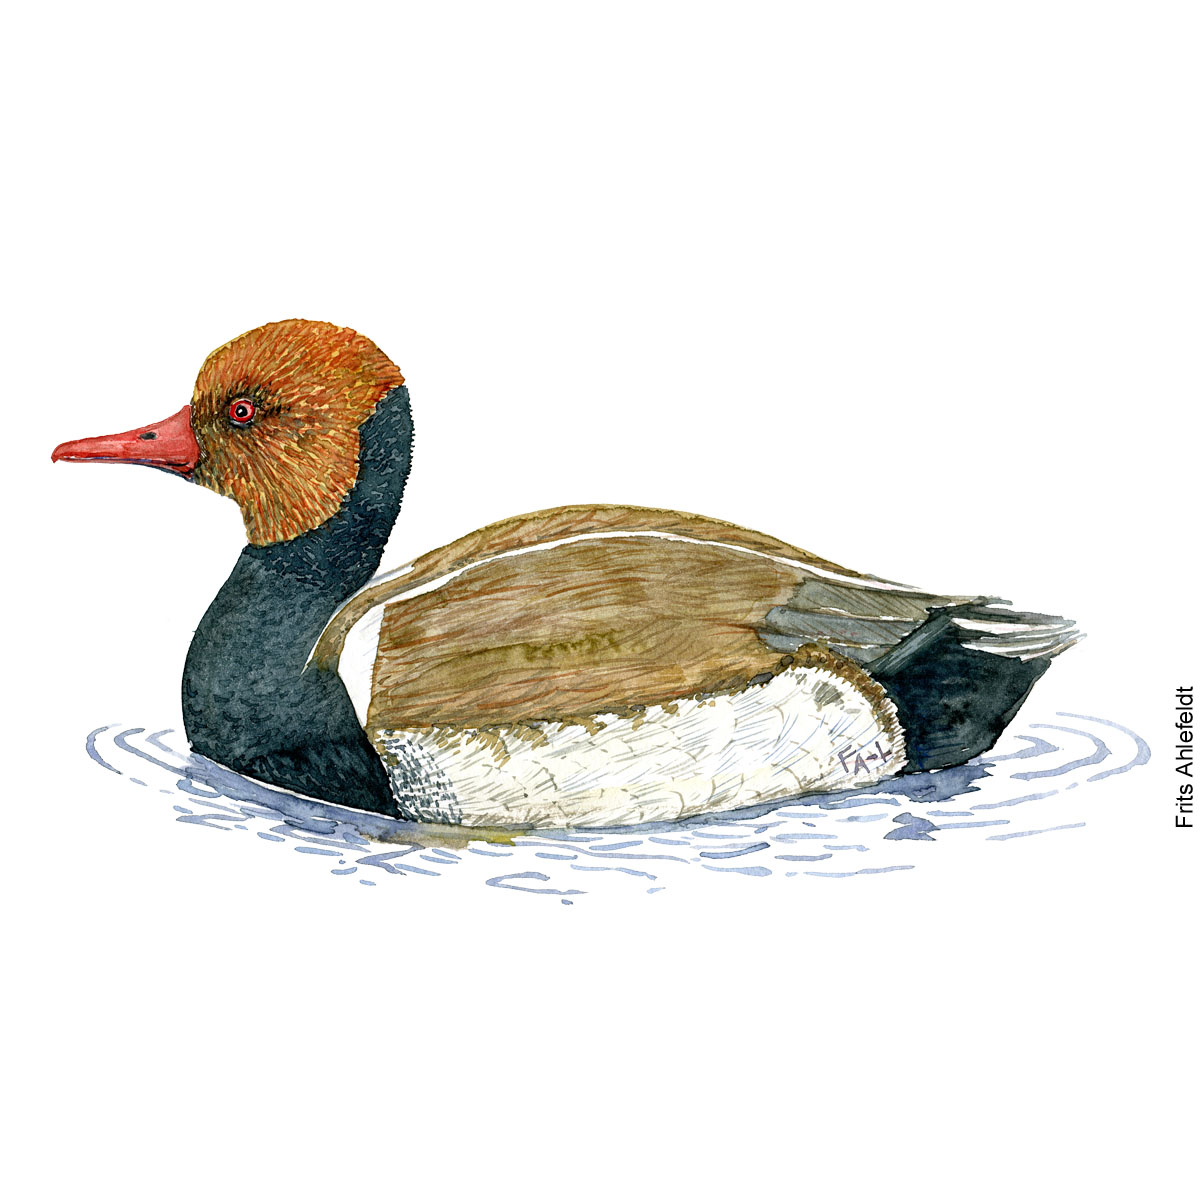 Roedhovedet and - Red crested pochard duck. bird watercolor painting. Artwork by Frits Ahlefeldt. Fugle akvarel